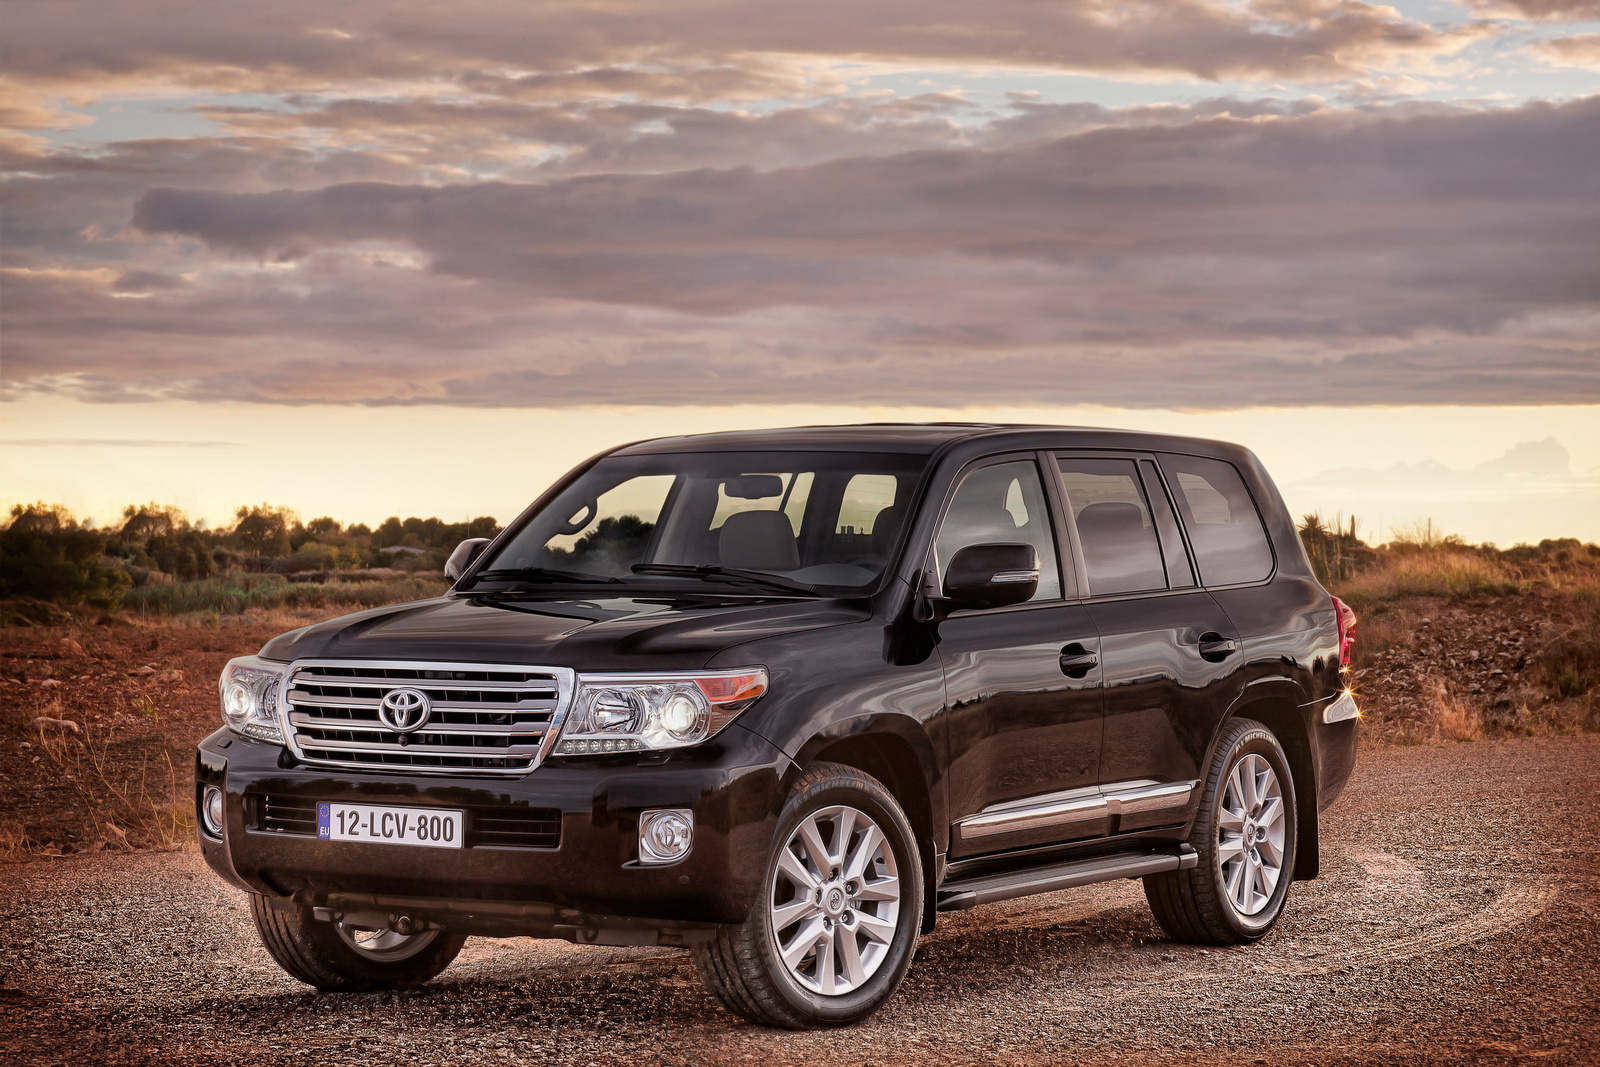 2013 Toyota Land Cruiser Review Cargurus